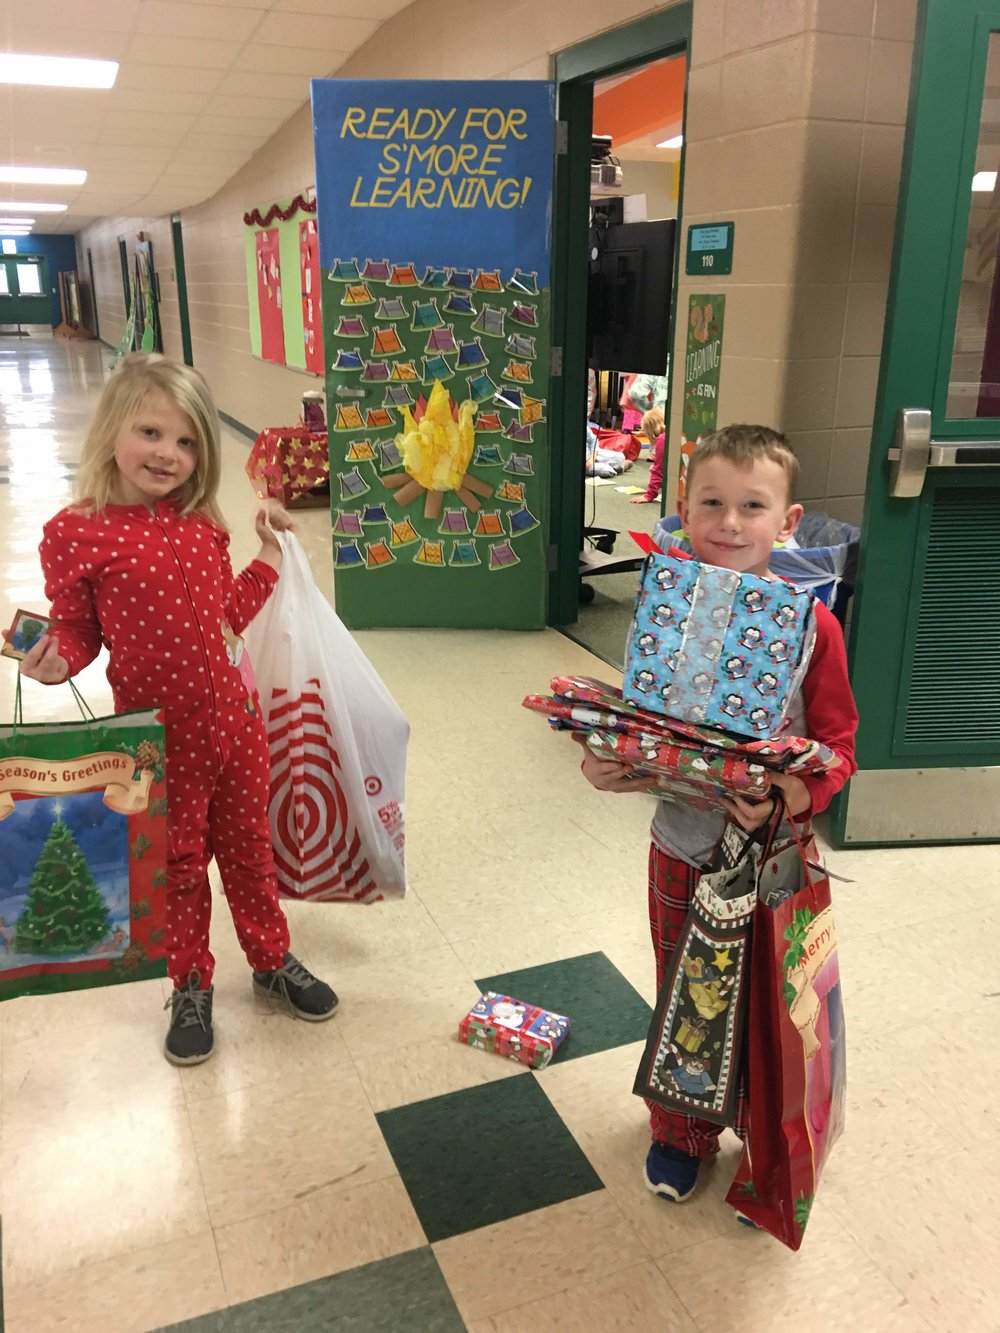 Our Re-Gift Event on 12/22 was a huge success - we hope your children enjoyed giving their gifts!   Thank you to all of our volunteers, families we donated, and for the students that shopped this great event. It allowed our students to use their mathematical and budgeting skill in a real life way - #hands on learning!